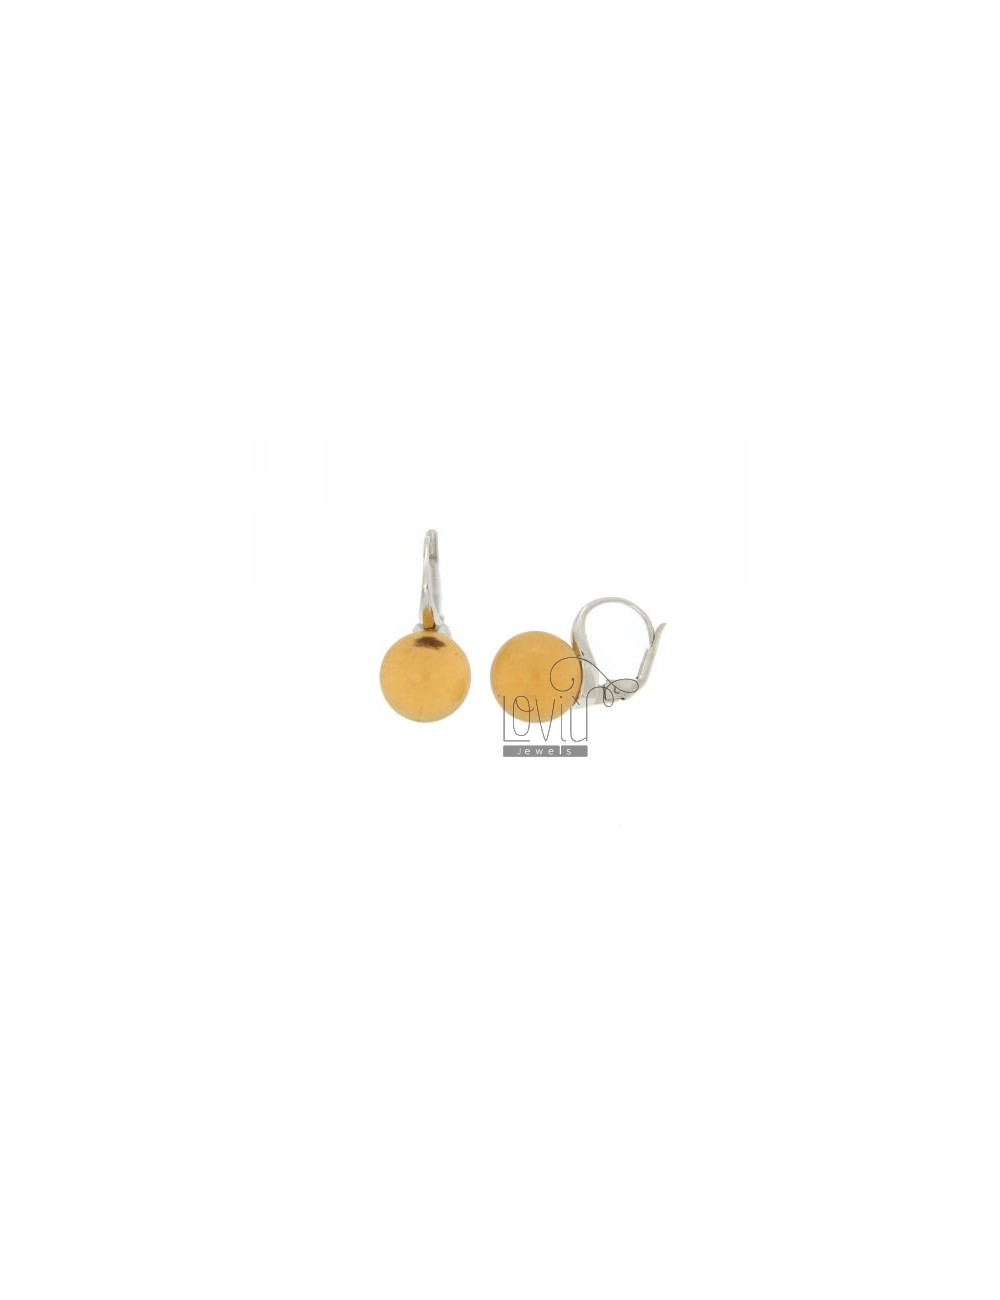 Monachella EARRINGS WITH STONE BALL 12 MM YELLOW OCRE HYDROTHERMAL CLEAR TITLE 3 SILVER RHODIUM 925